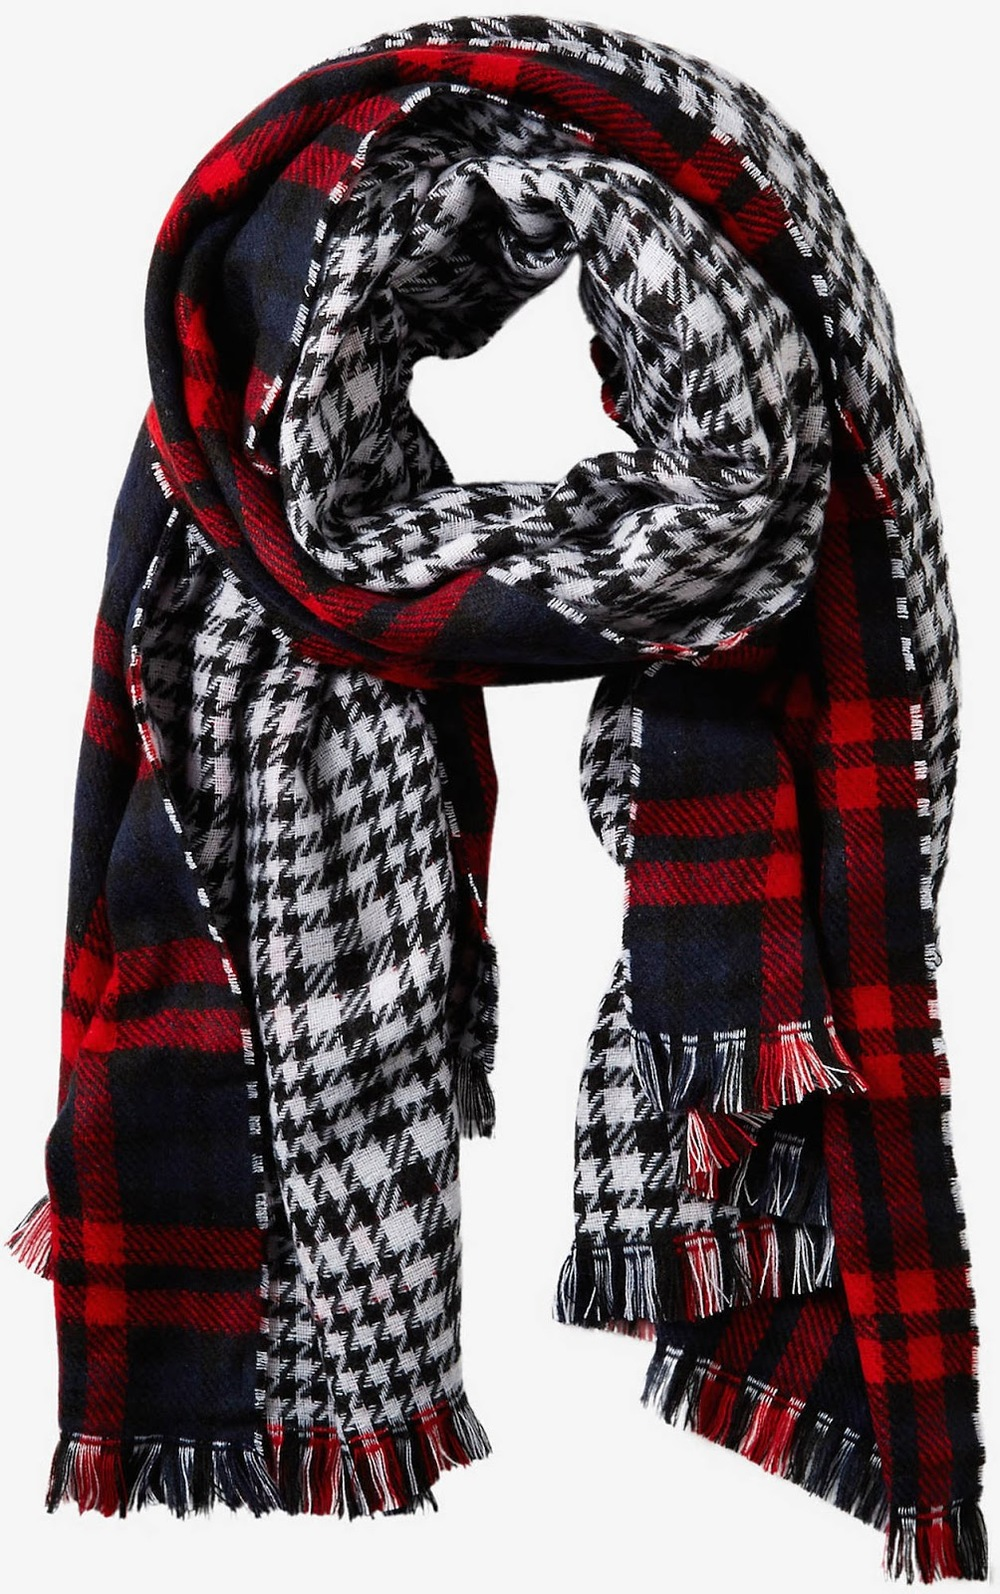 Reversible Double Plaid Blanket Scarf, $49.90 at    Express.com .